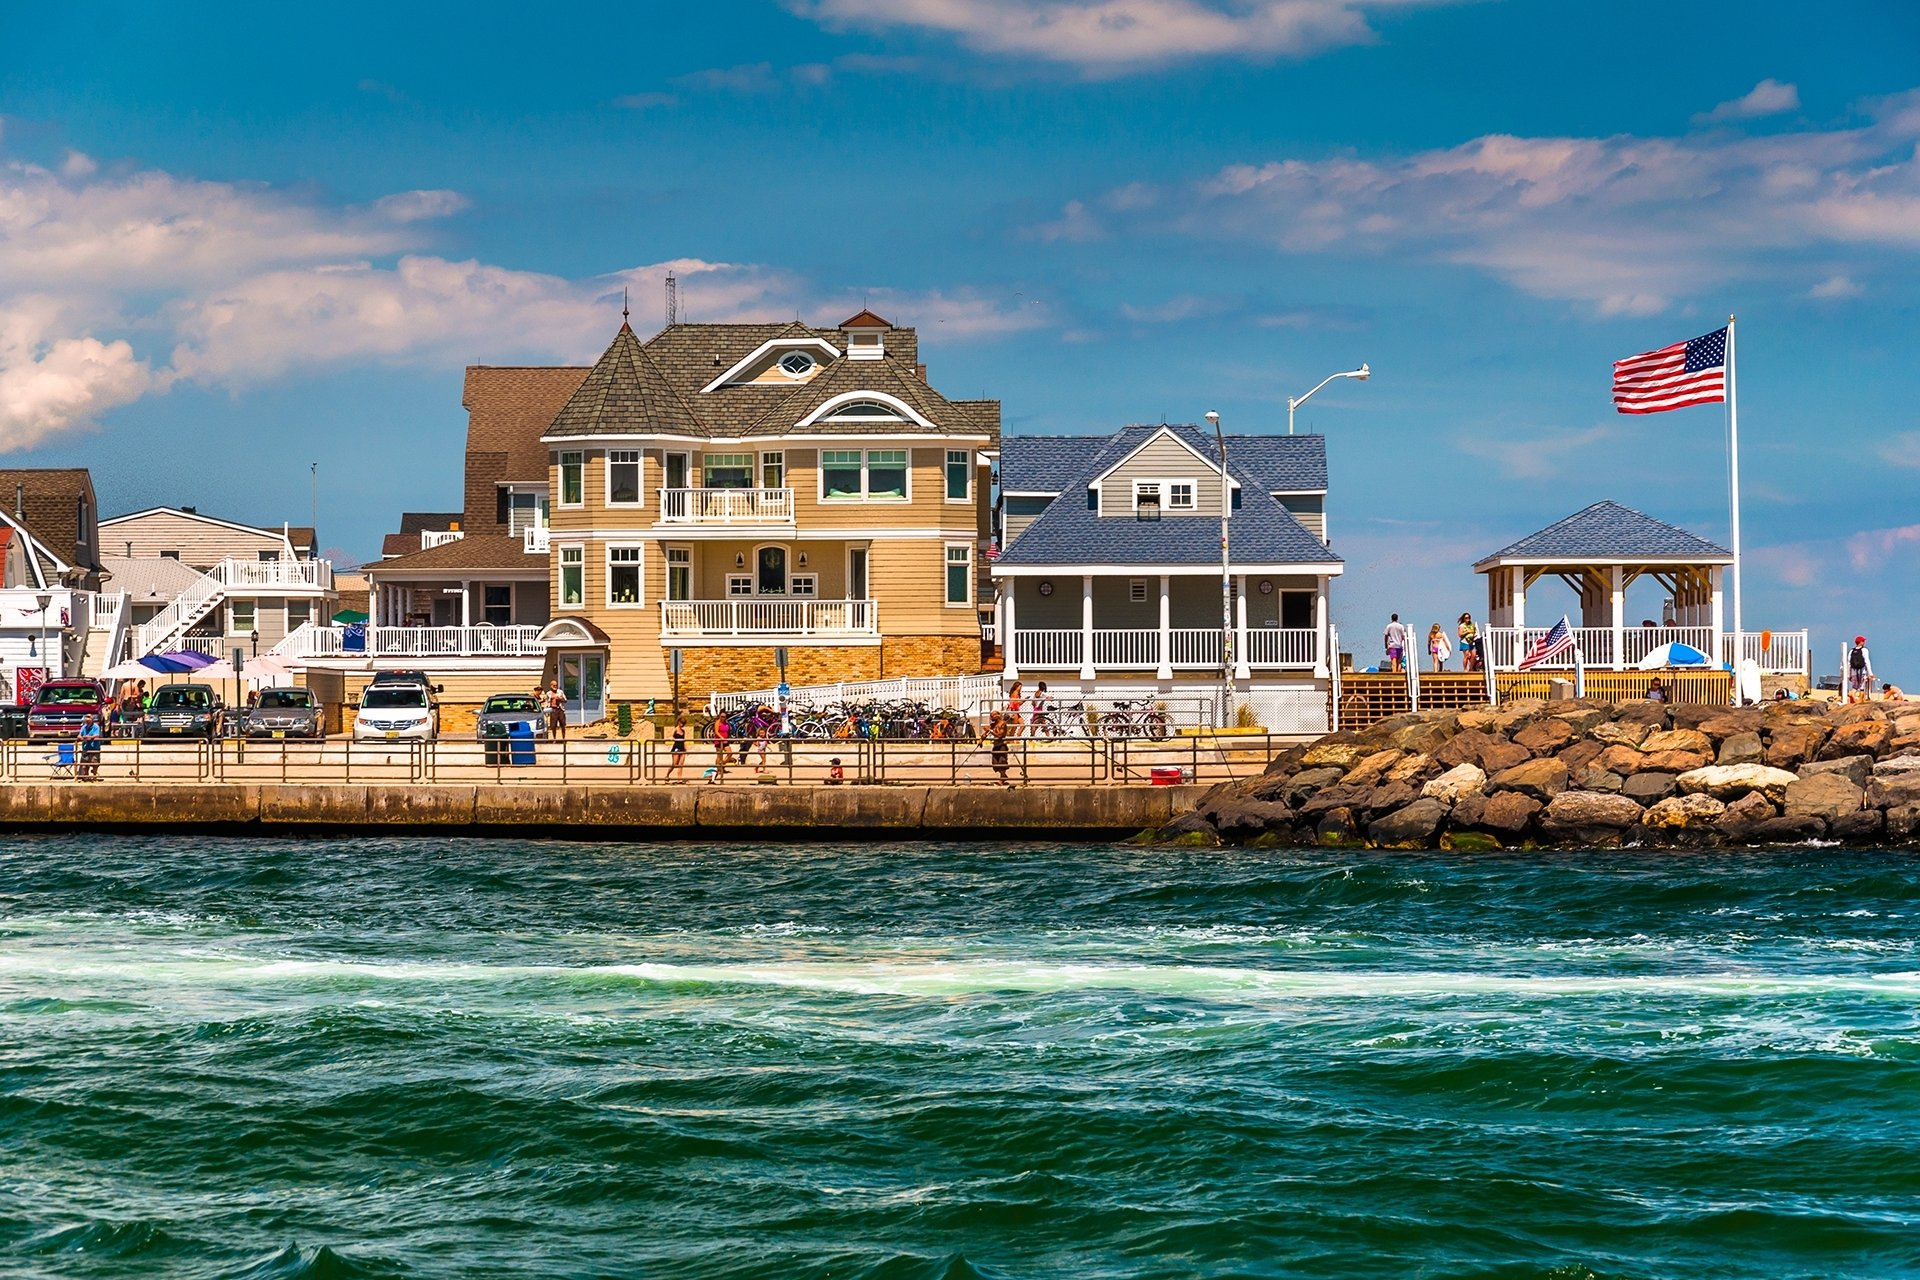 10 best east coast beach rental destinations for families - family